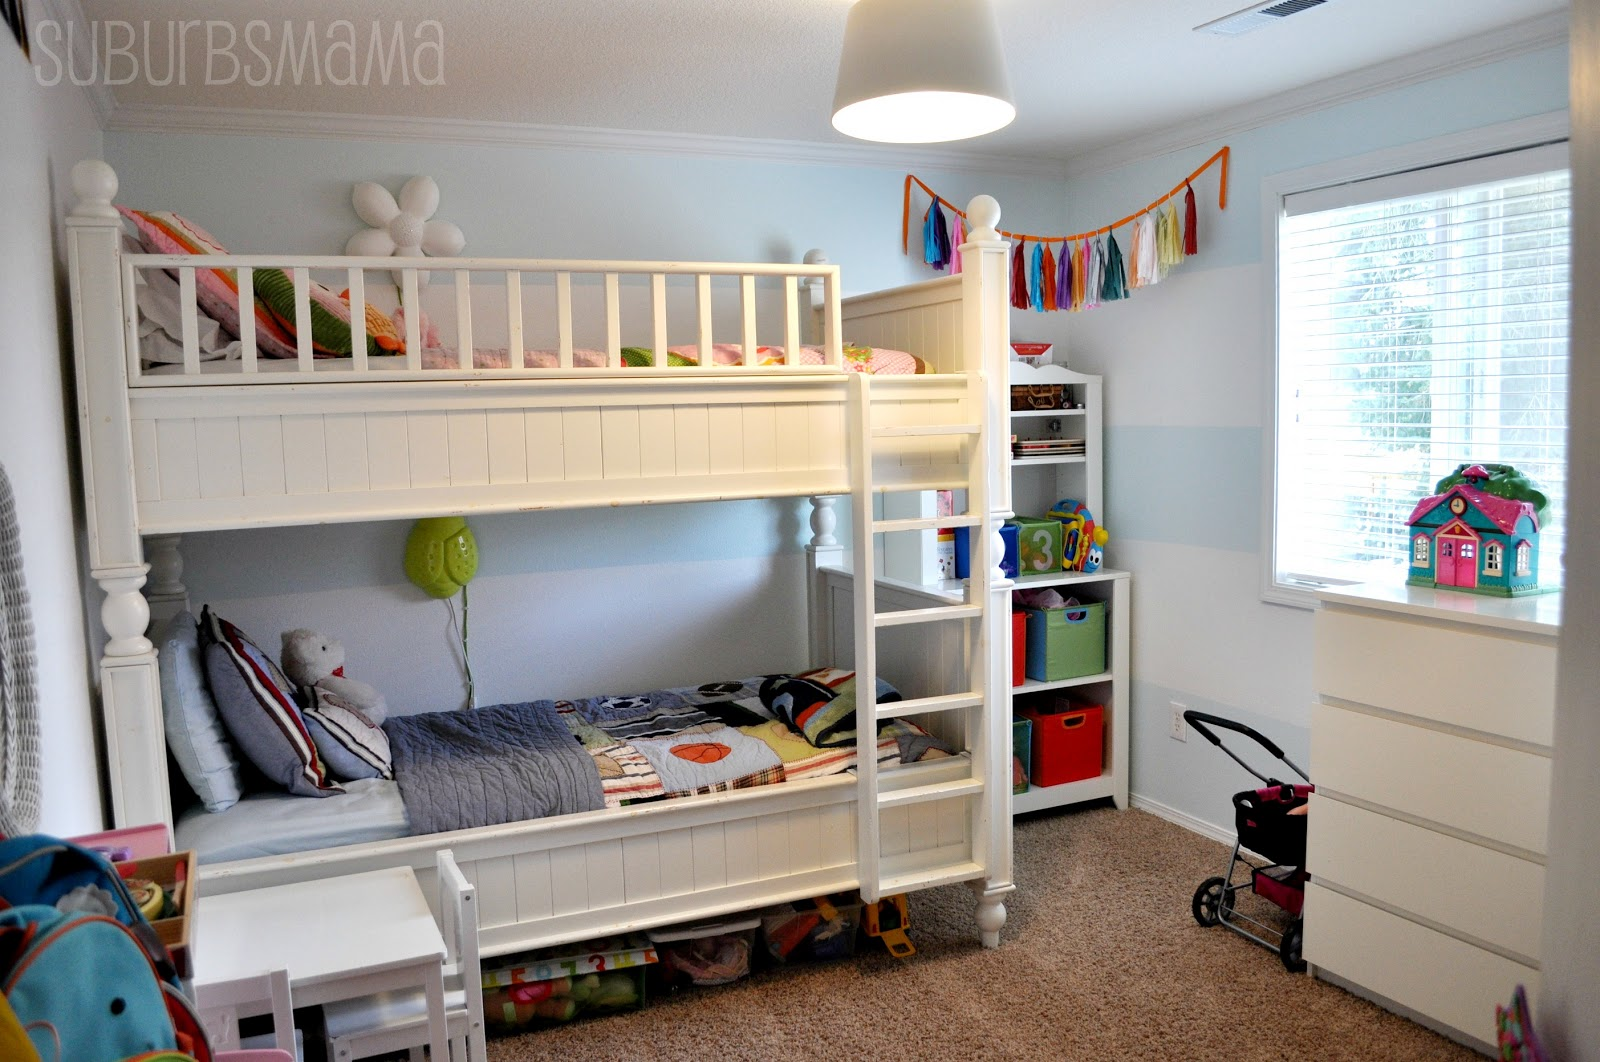 Suburbs mama new shared kids room tour for Shared boy and girl room ideas